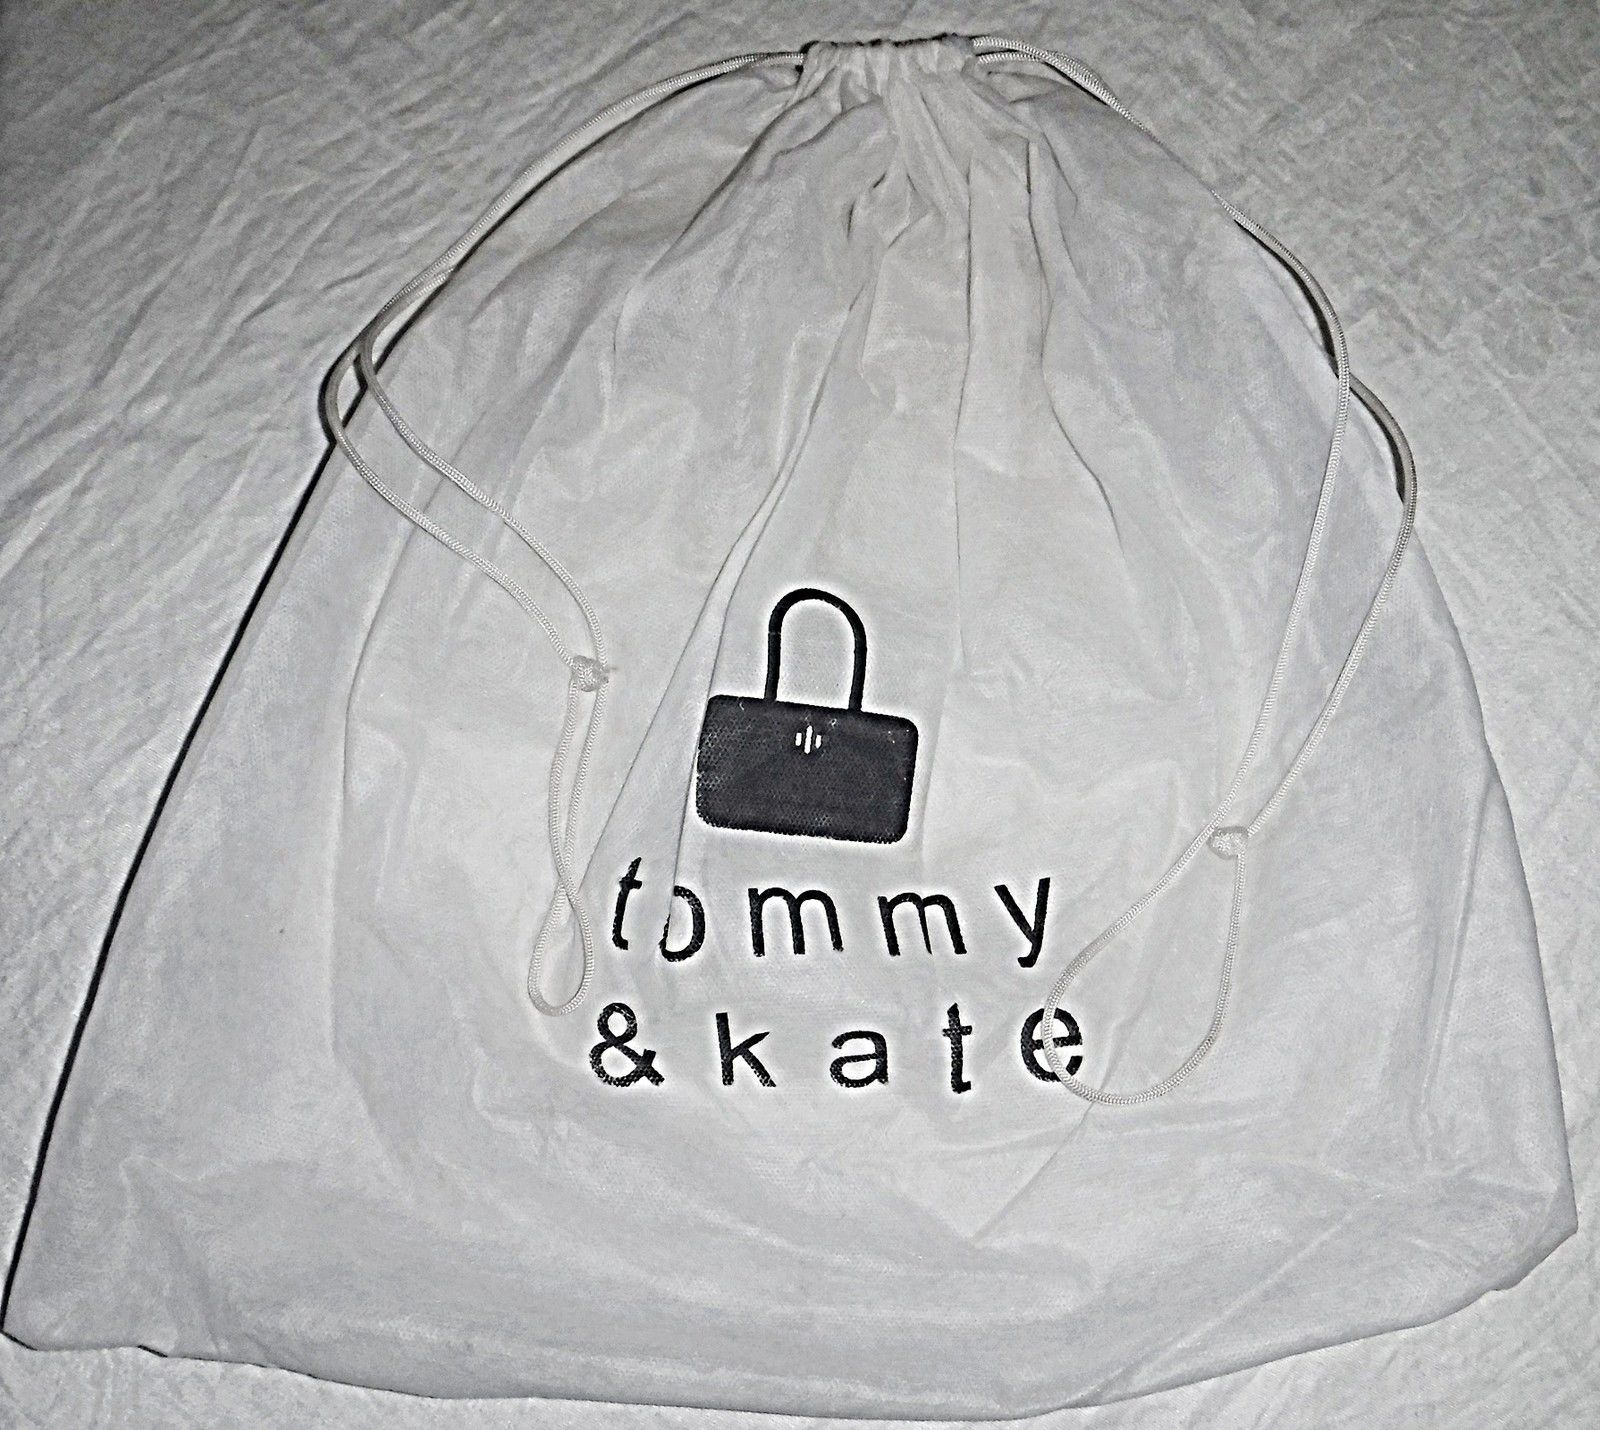 a6834513573 'TOMMY & KATE' ICED PINK LEATHER HANDBAG WITH MATCHING BOXED PURSE IN DUST  BAG